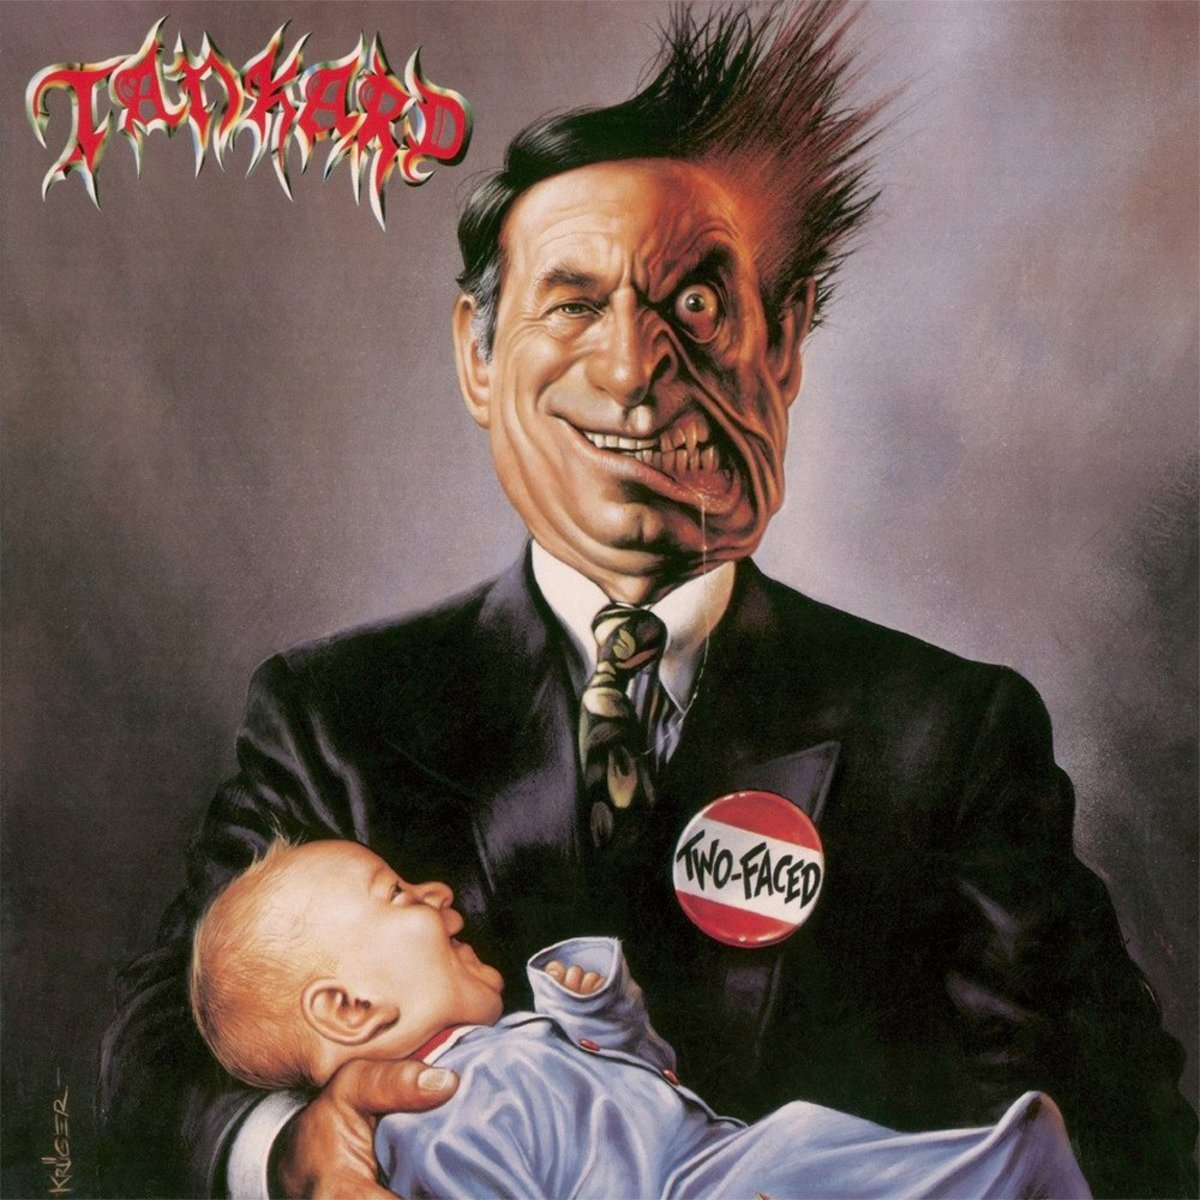 Review of the Album Two-Faced by German Thrash Metal Band Tankard